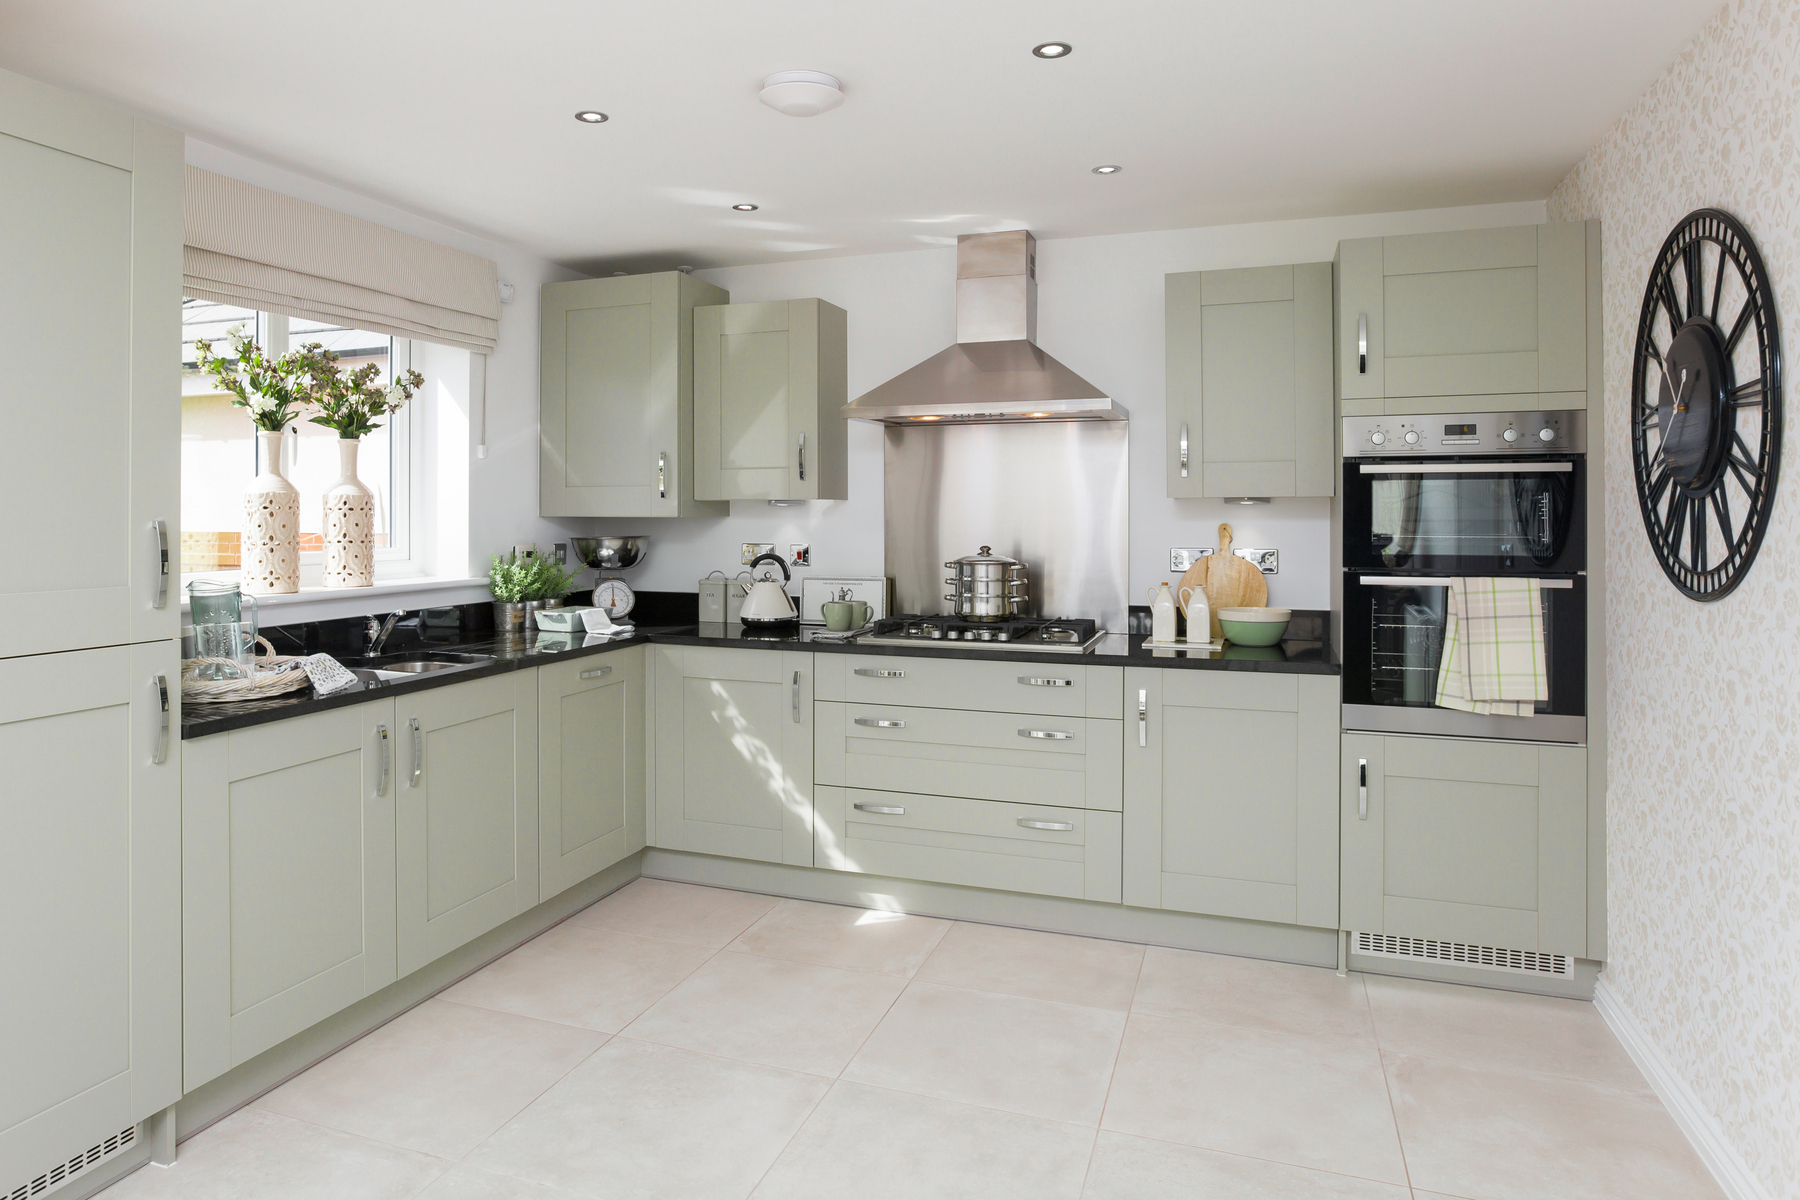 TW MIDLANDS_Milby Hall_D1760_Heydon_Kitchen_1